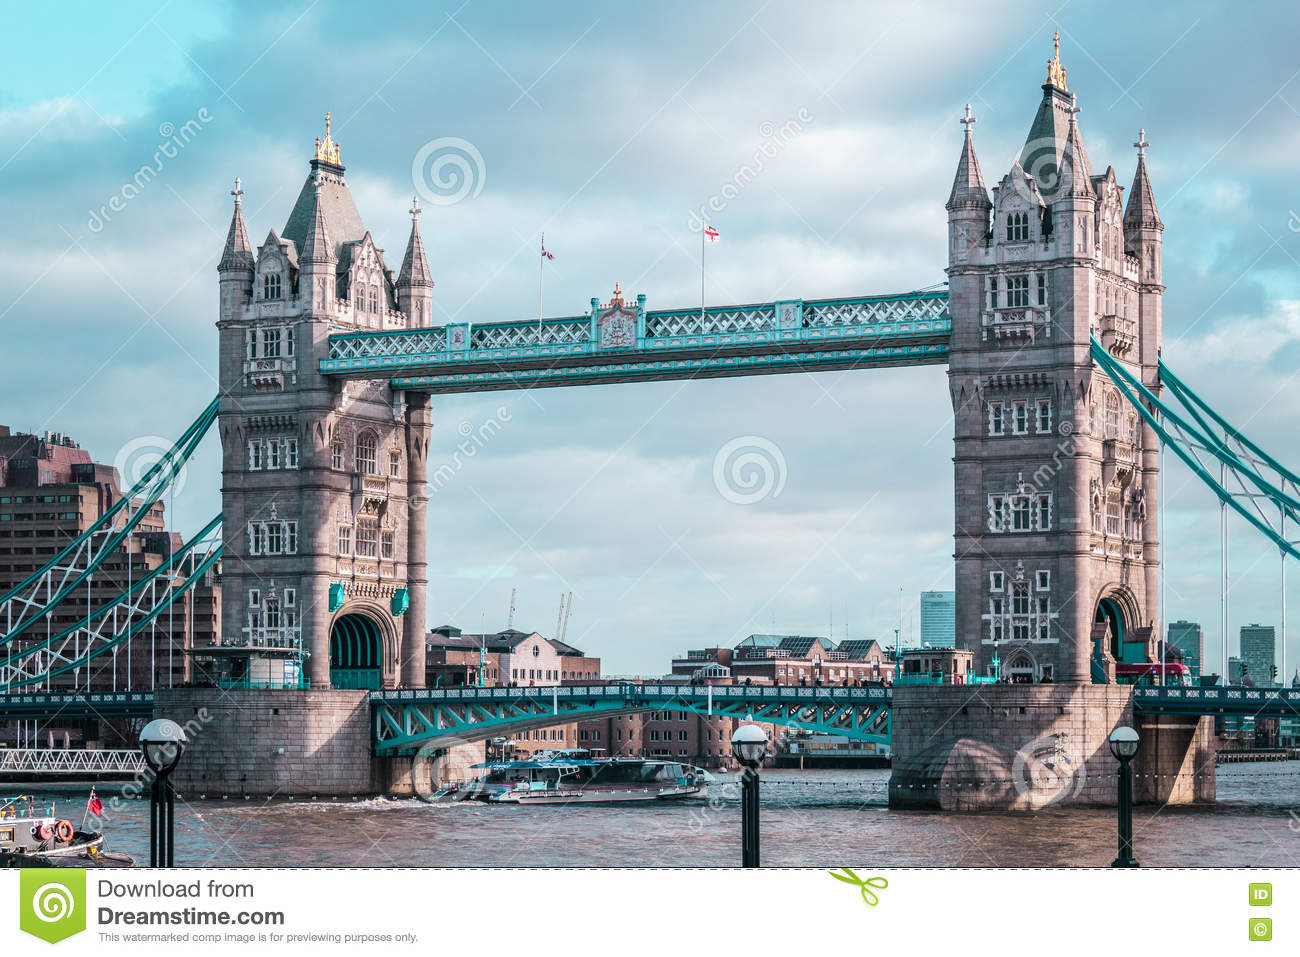 the tower bridge in england Just in time to see a huge ocean liner heading out to sea tower bridge is a combined bascule and suspension bridge in london, england, over the river thames.